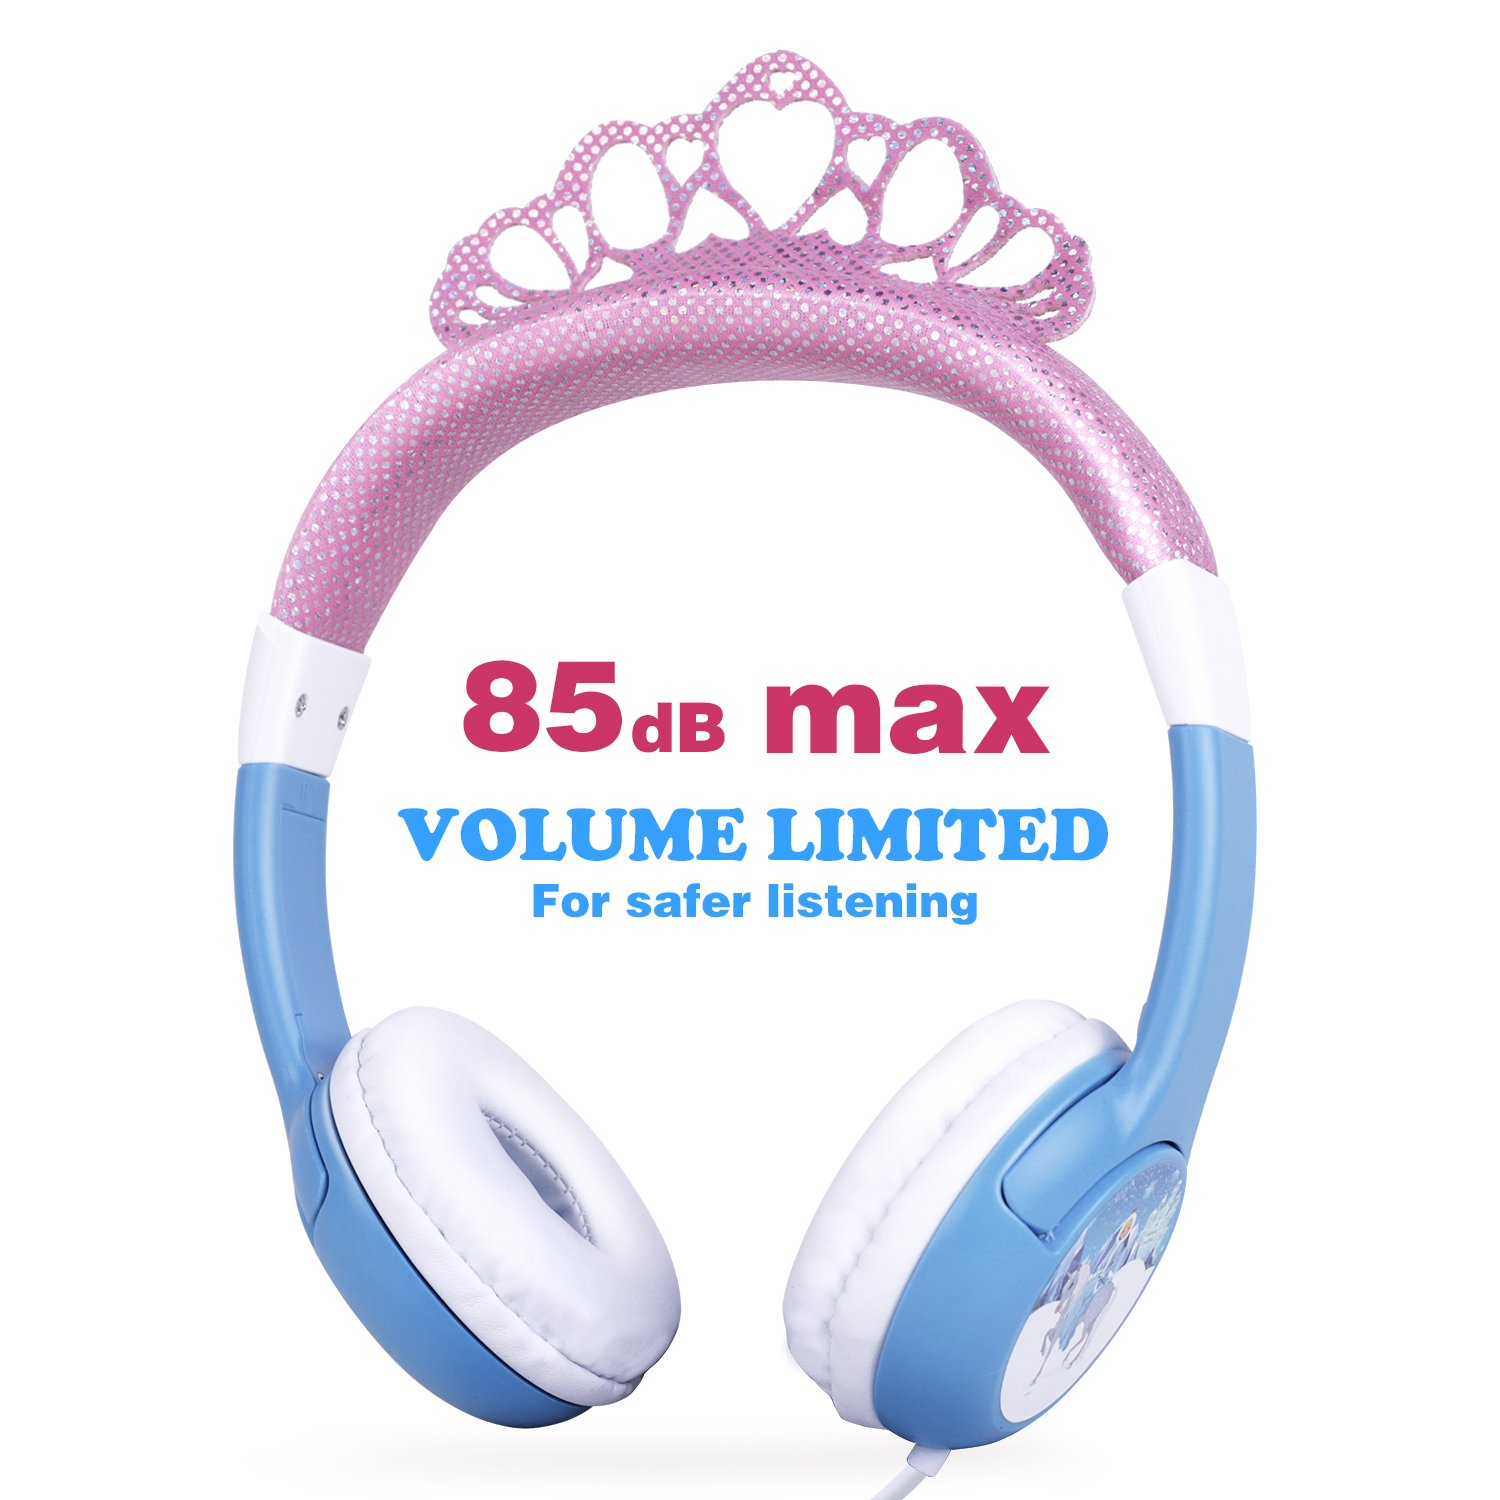 OneOdio Kids Over Ear Headphones - 85dB Volume Limited Headsets for Children, Durable, Adjustable, Lightweight Earphones with 3.5mm Jack for iPad, Kindle, Computers and Tablet (Crown Headband/Blue)